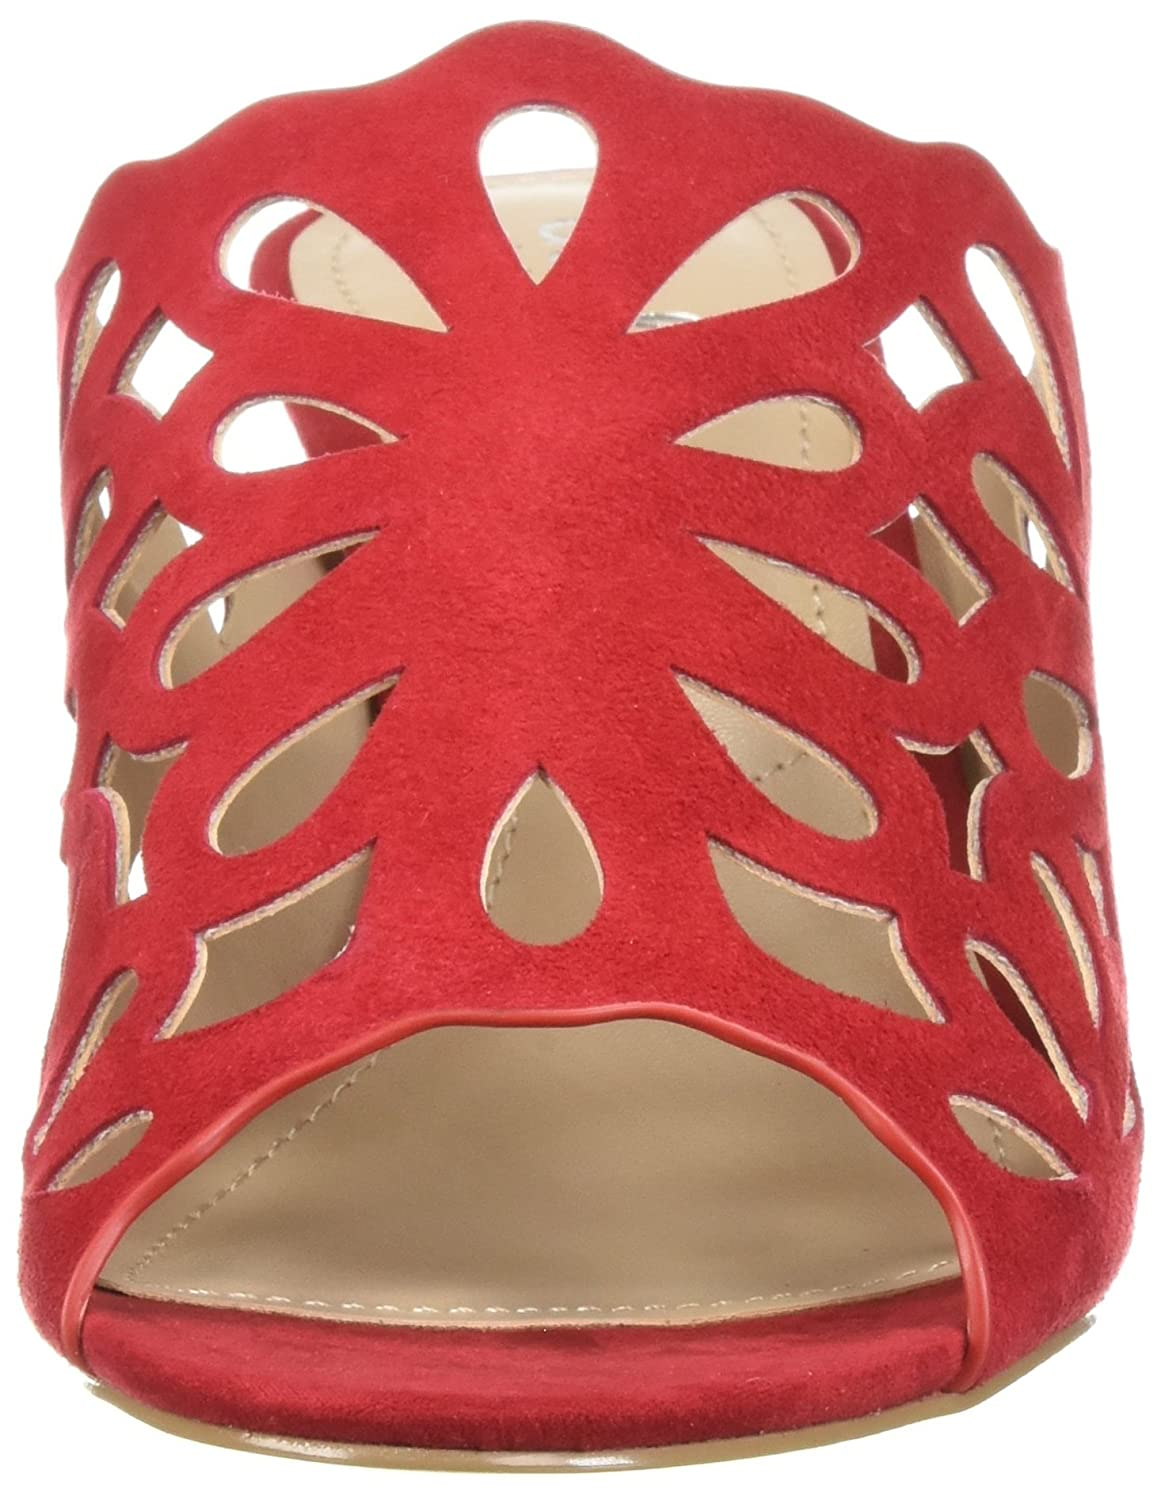 Charles by Charles David Women's Nicki Slide Sandal B075QKPK6T 5.5 B(M) US|Scarlet